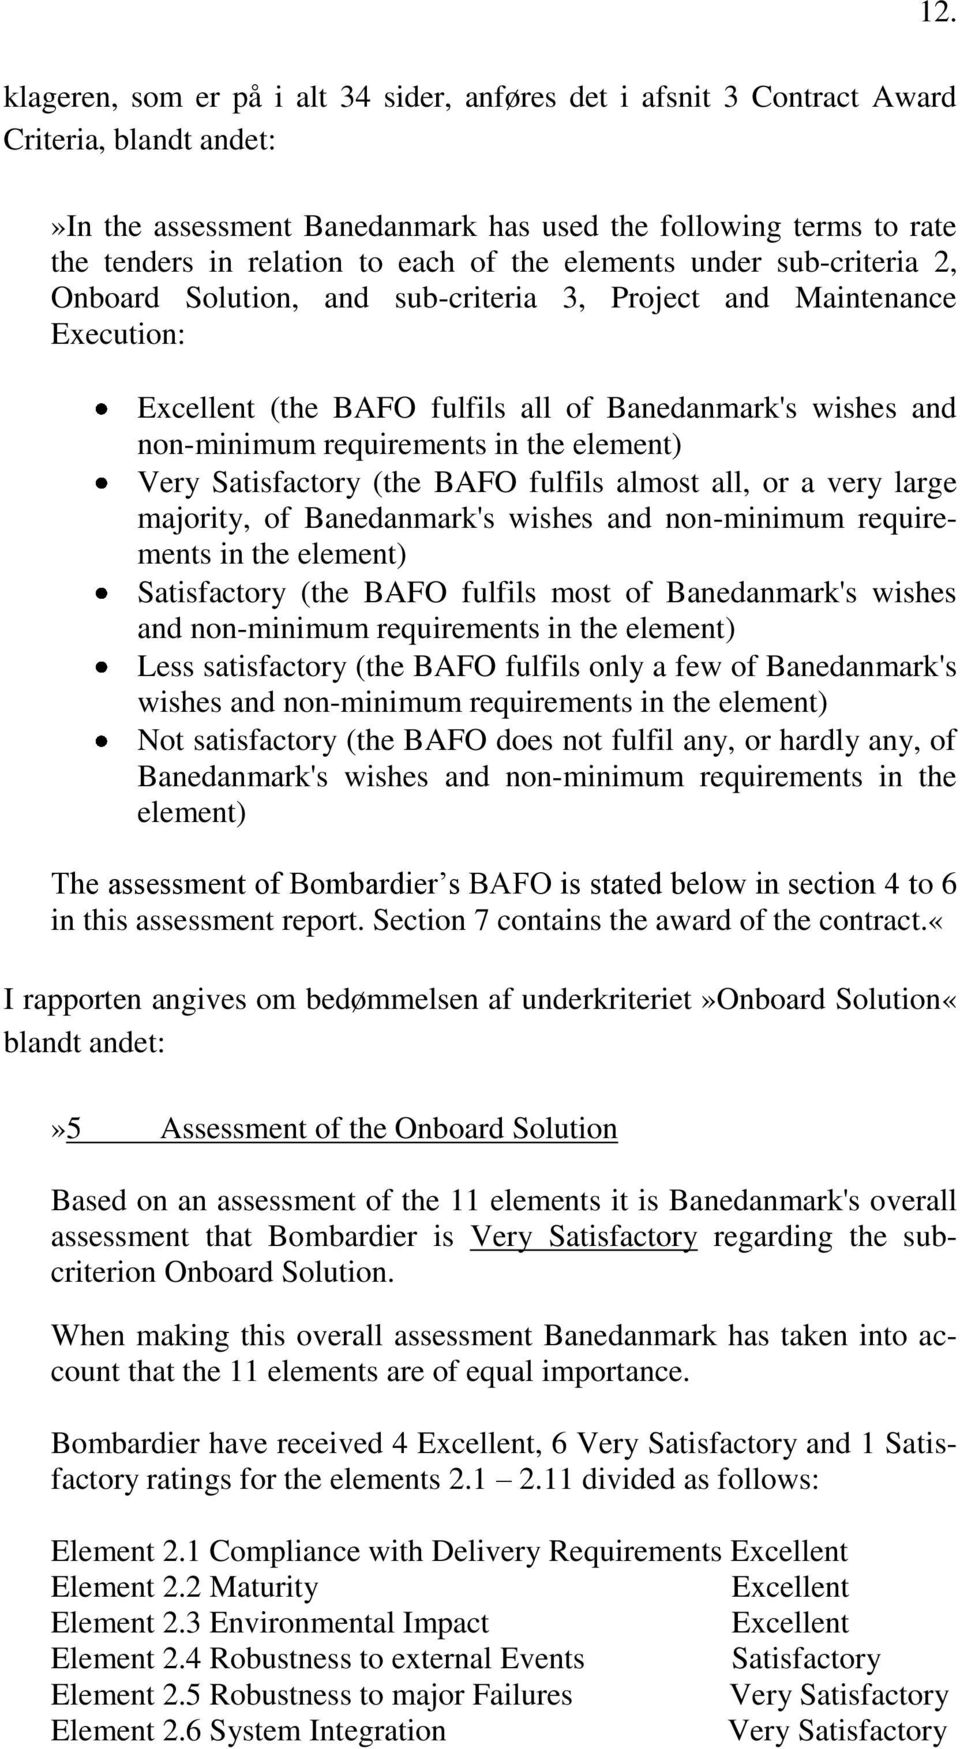 requirements in the element) Very Satisfactory (the BAFO fulfils almost all, or a very large majority, of Banedanmark's wishes and non-minimum requirements in the element) Satisfactory (the BAFO